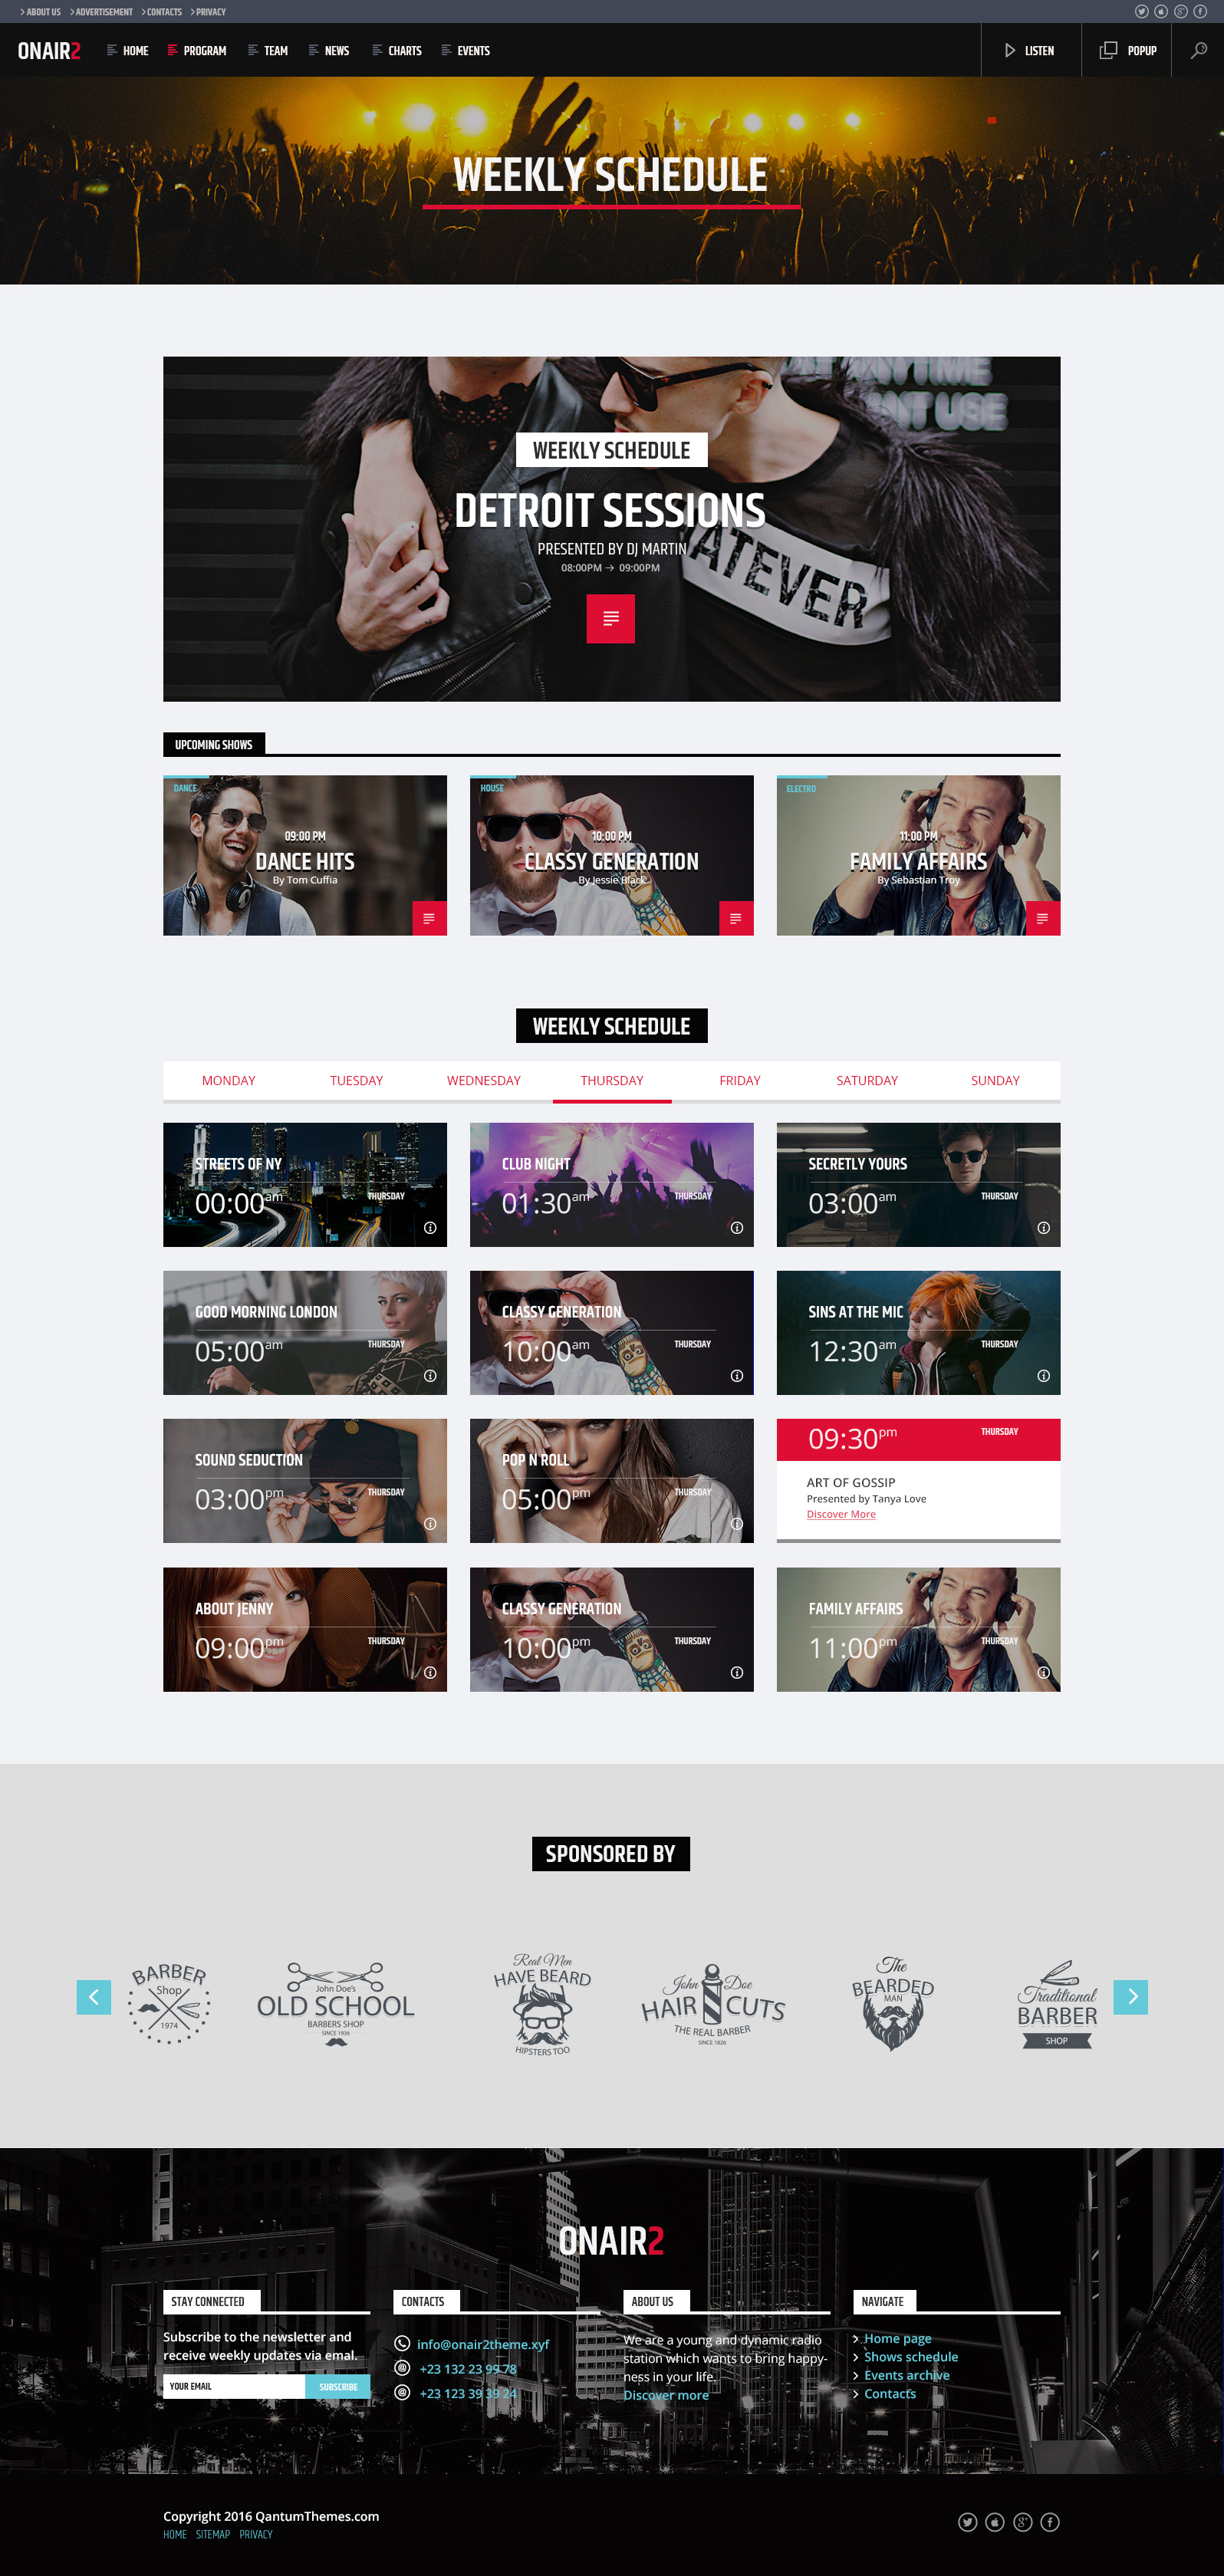 ON AIR 2: Radio Station HTML website template by QantumThemes ...